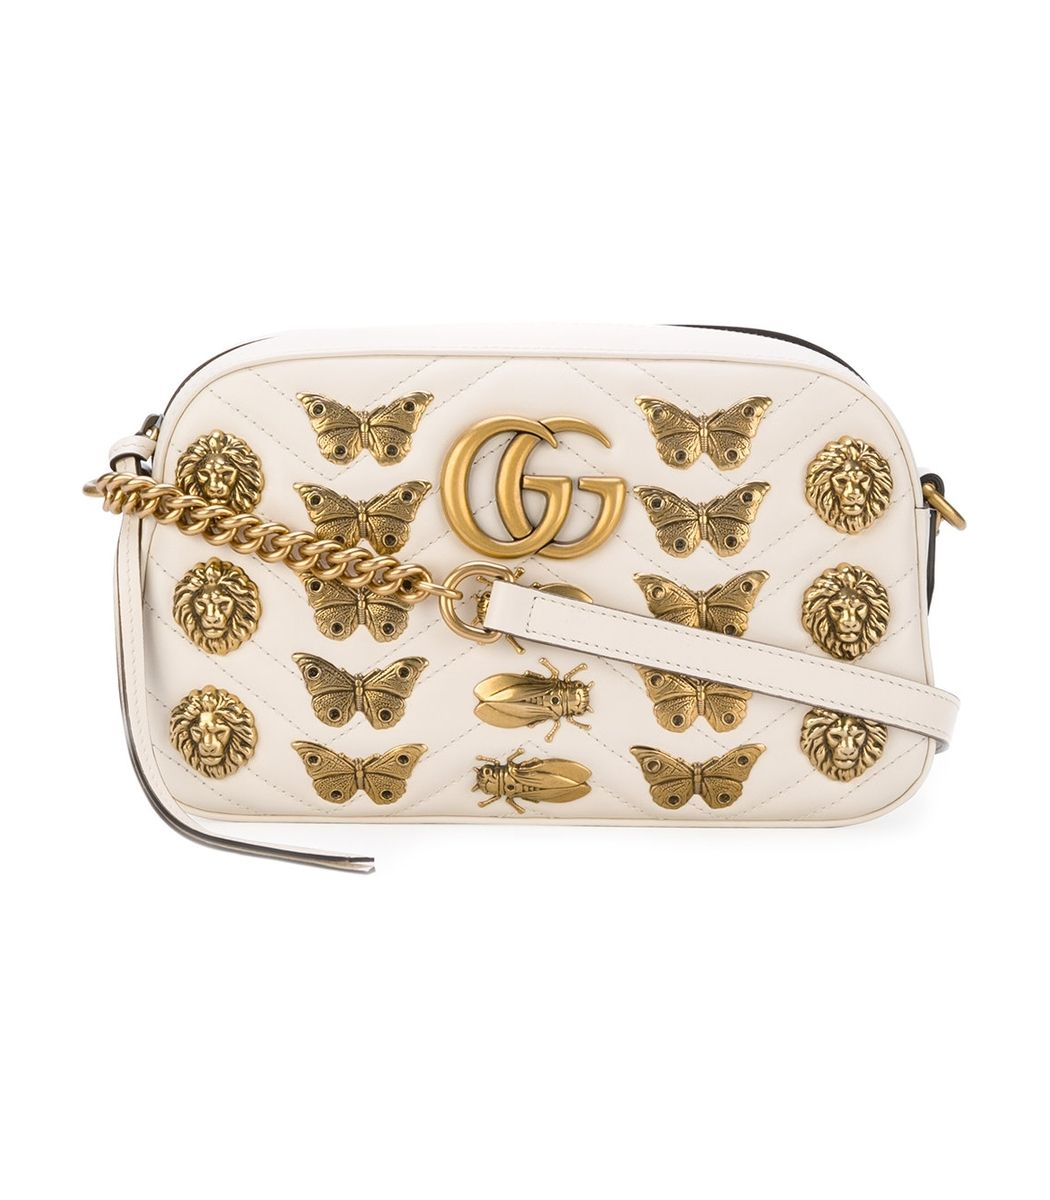 ee05363e750972 GUCCI White Gg Marmont Butterfly Bag. #gucci #bags #shoulder bags #leather  #crossbody #